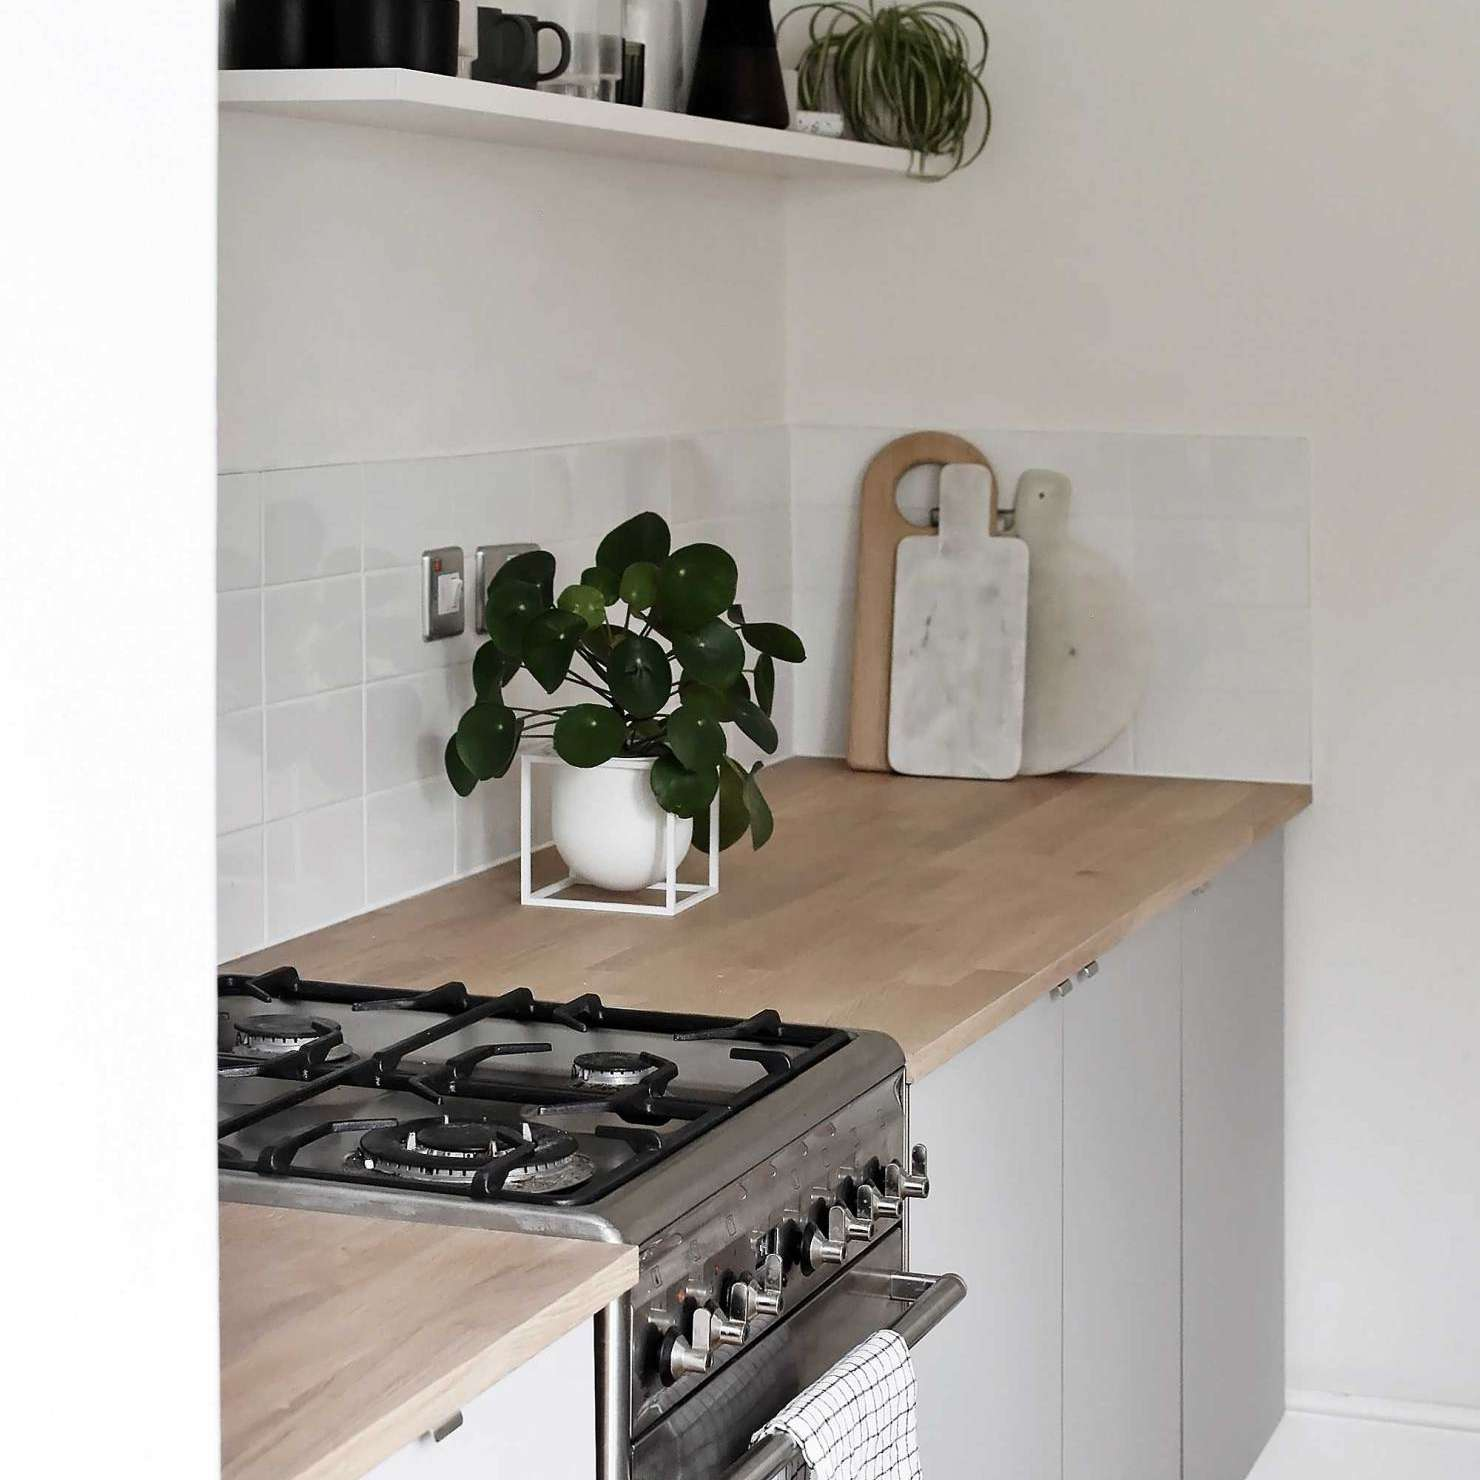 Kitchen with wooden countertops and small plant.